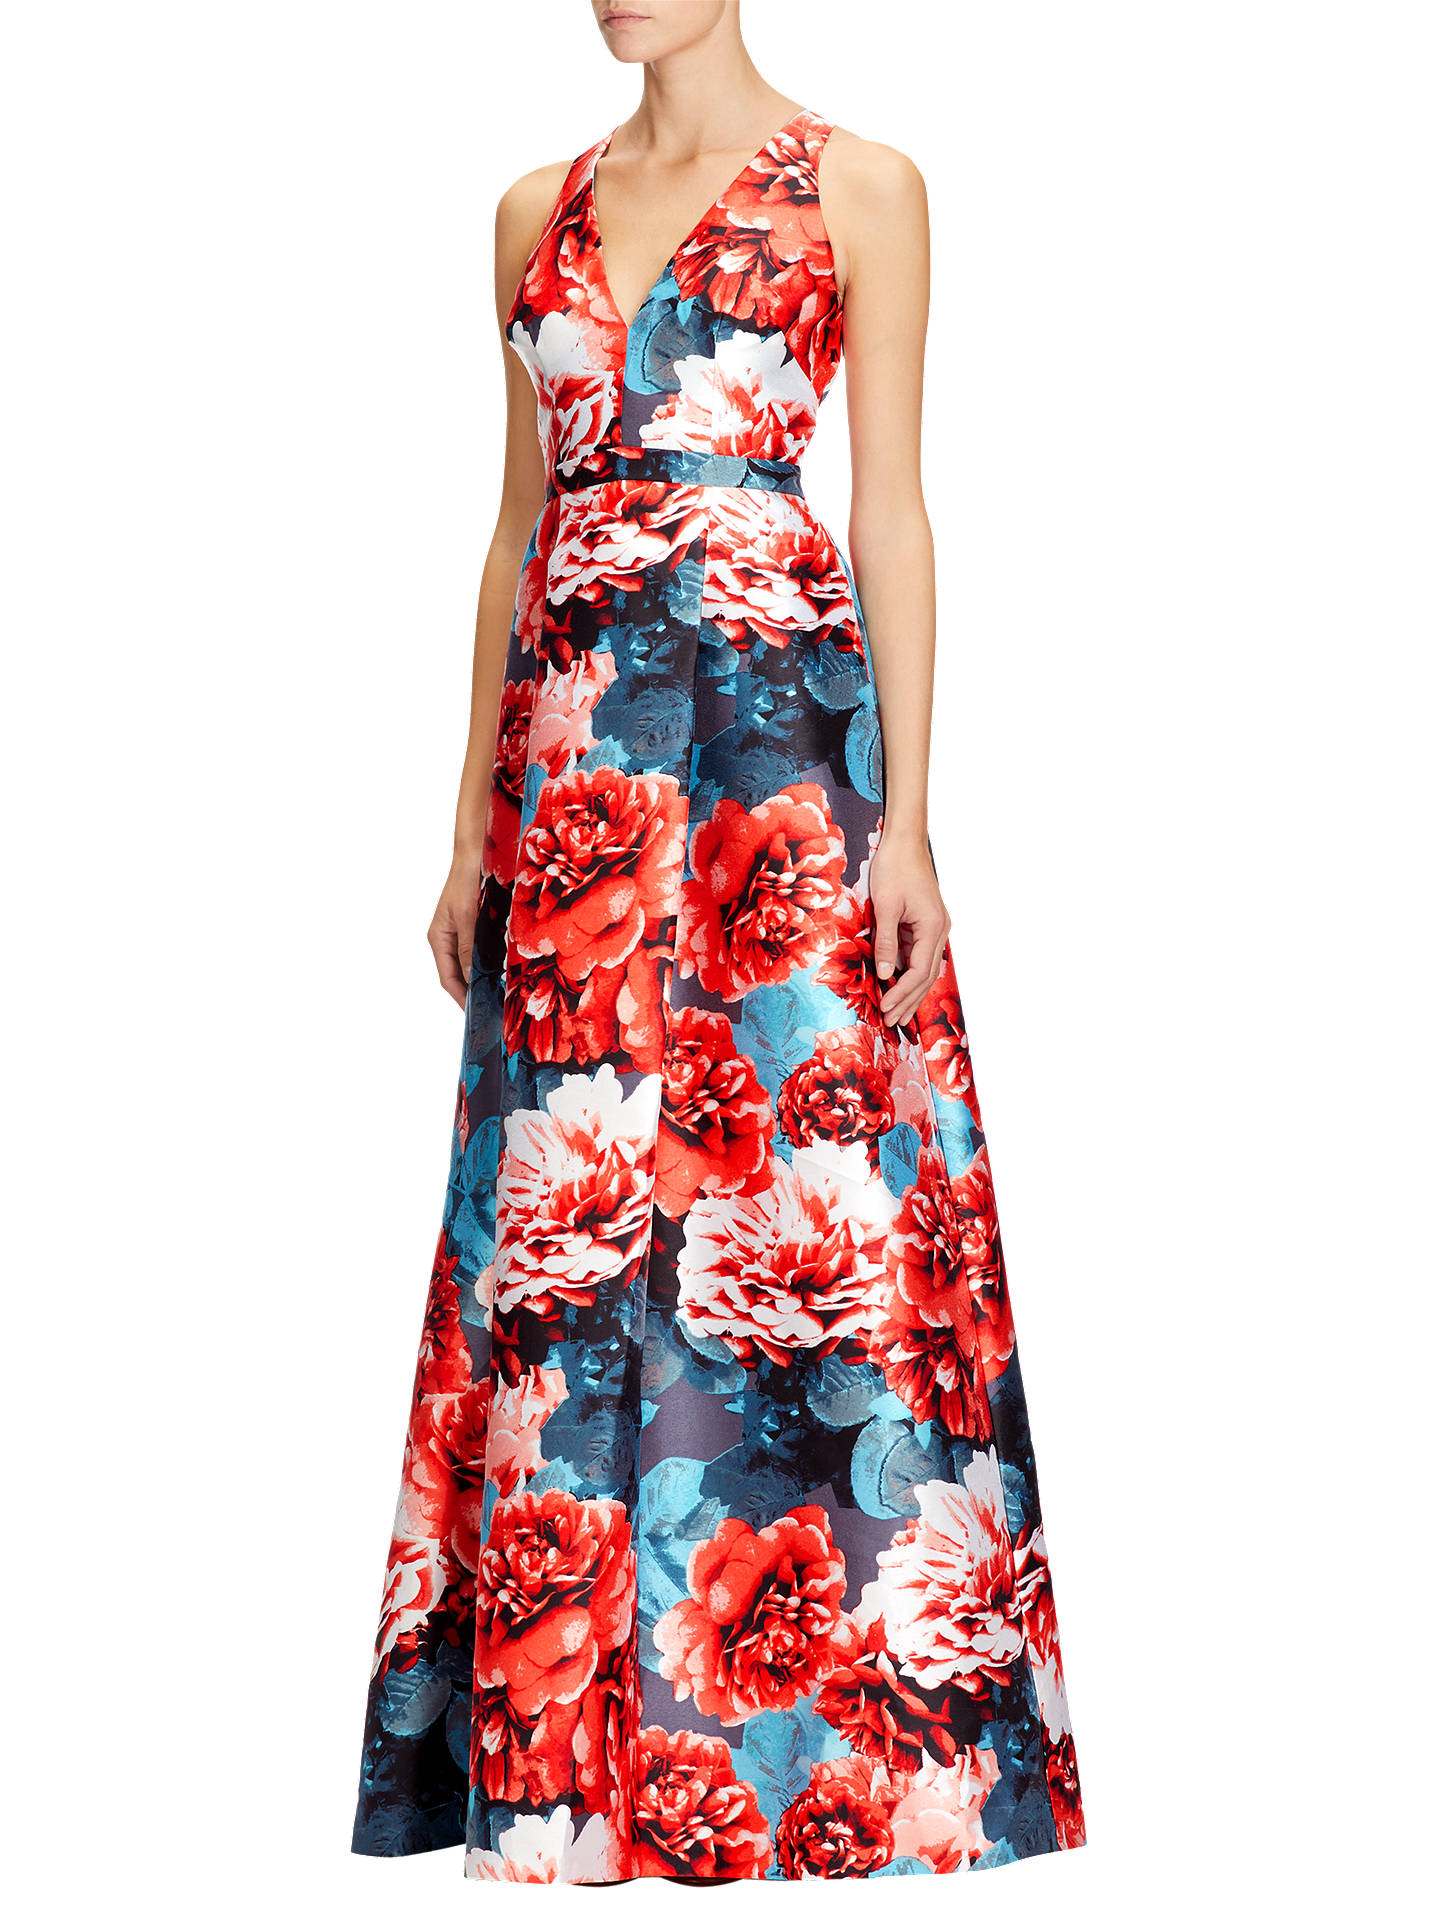 Adrianna Papell Jacquard Ball Gown, Coral/Multi at John Lewis & Partners